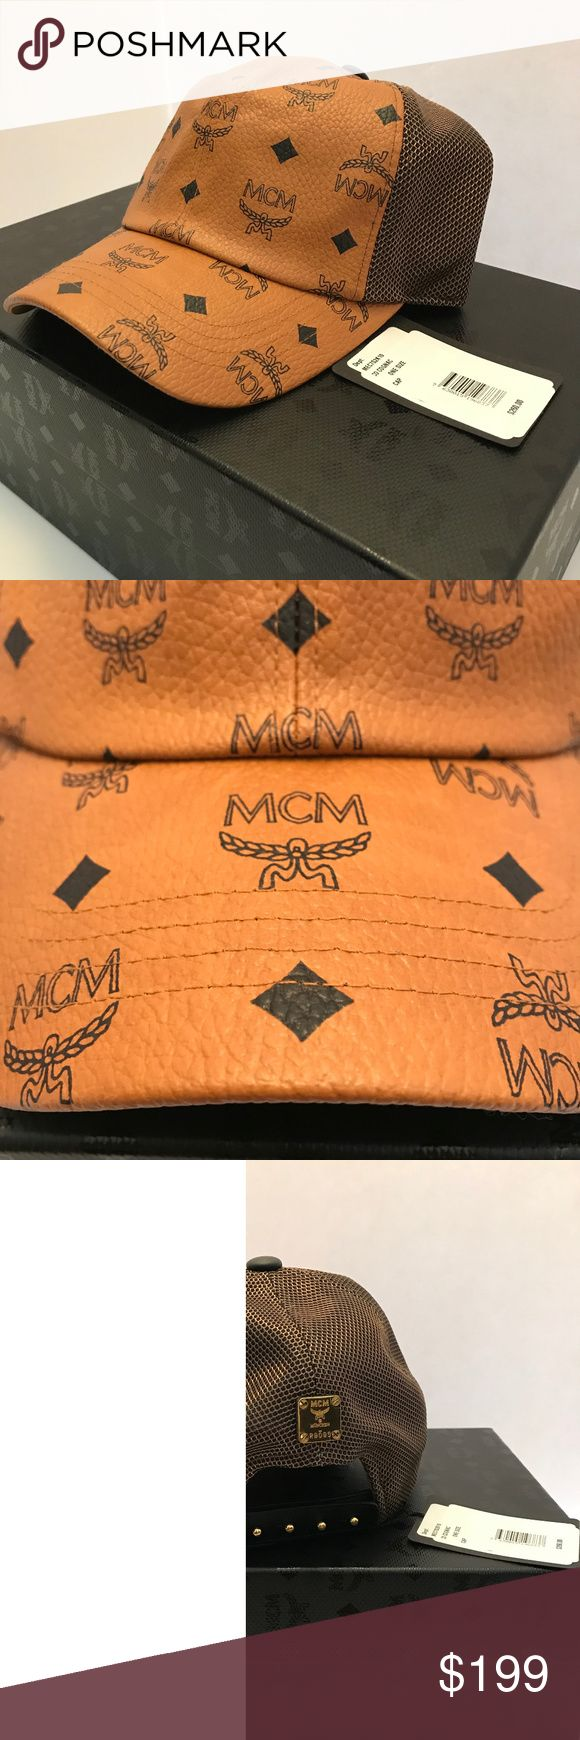 Mcm visetos cognac mesh snap baseball cap MCM VISETOS MESH CANVAS COATED HAT  ONE SIZE FITS ALL  COMES IN ORIGINAL, BAG WITH HANG TAGS/AUTHENTICITY CARD  100% AUTHENTIC MCM Accessories Hats